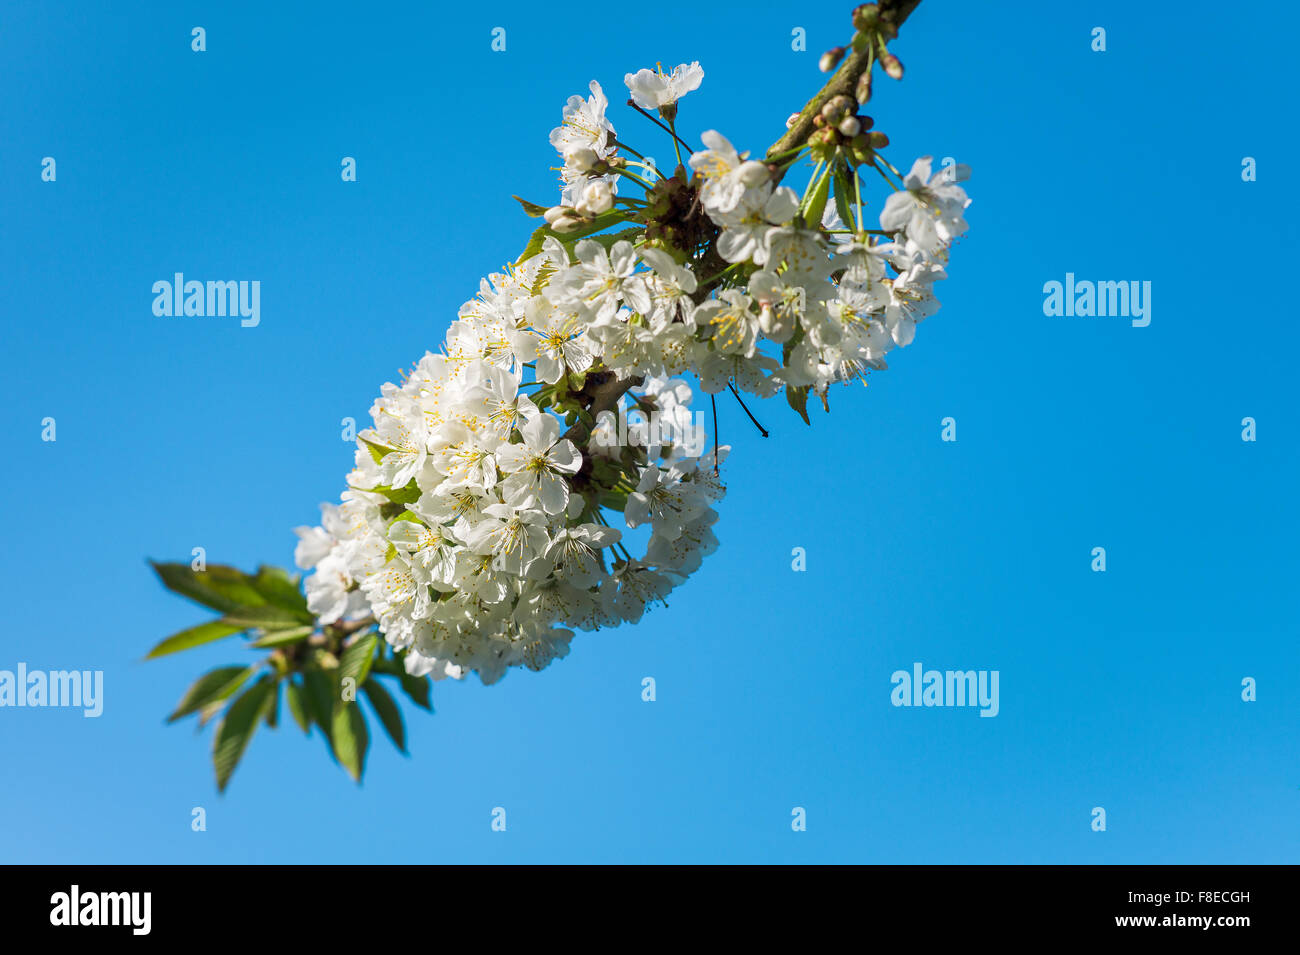 Dense clusters of white cherry blossom against a blue sky - Stock Image